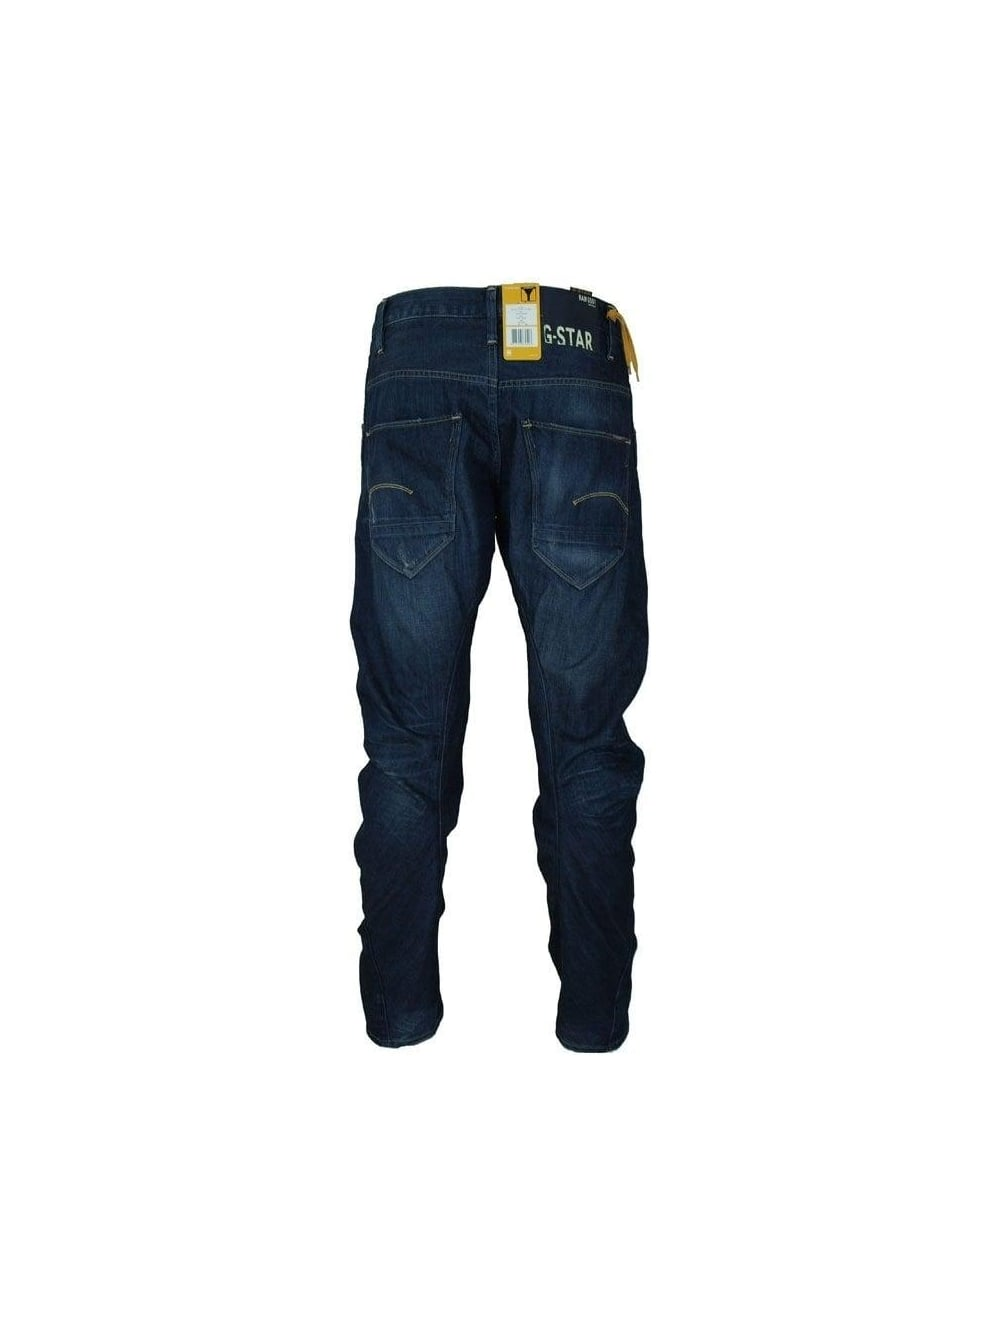 e79e010d1e5 G-Star Arc 3D Loose Tapered Jeans in Dark Aged wash - Buy G-Star at ...